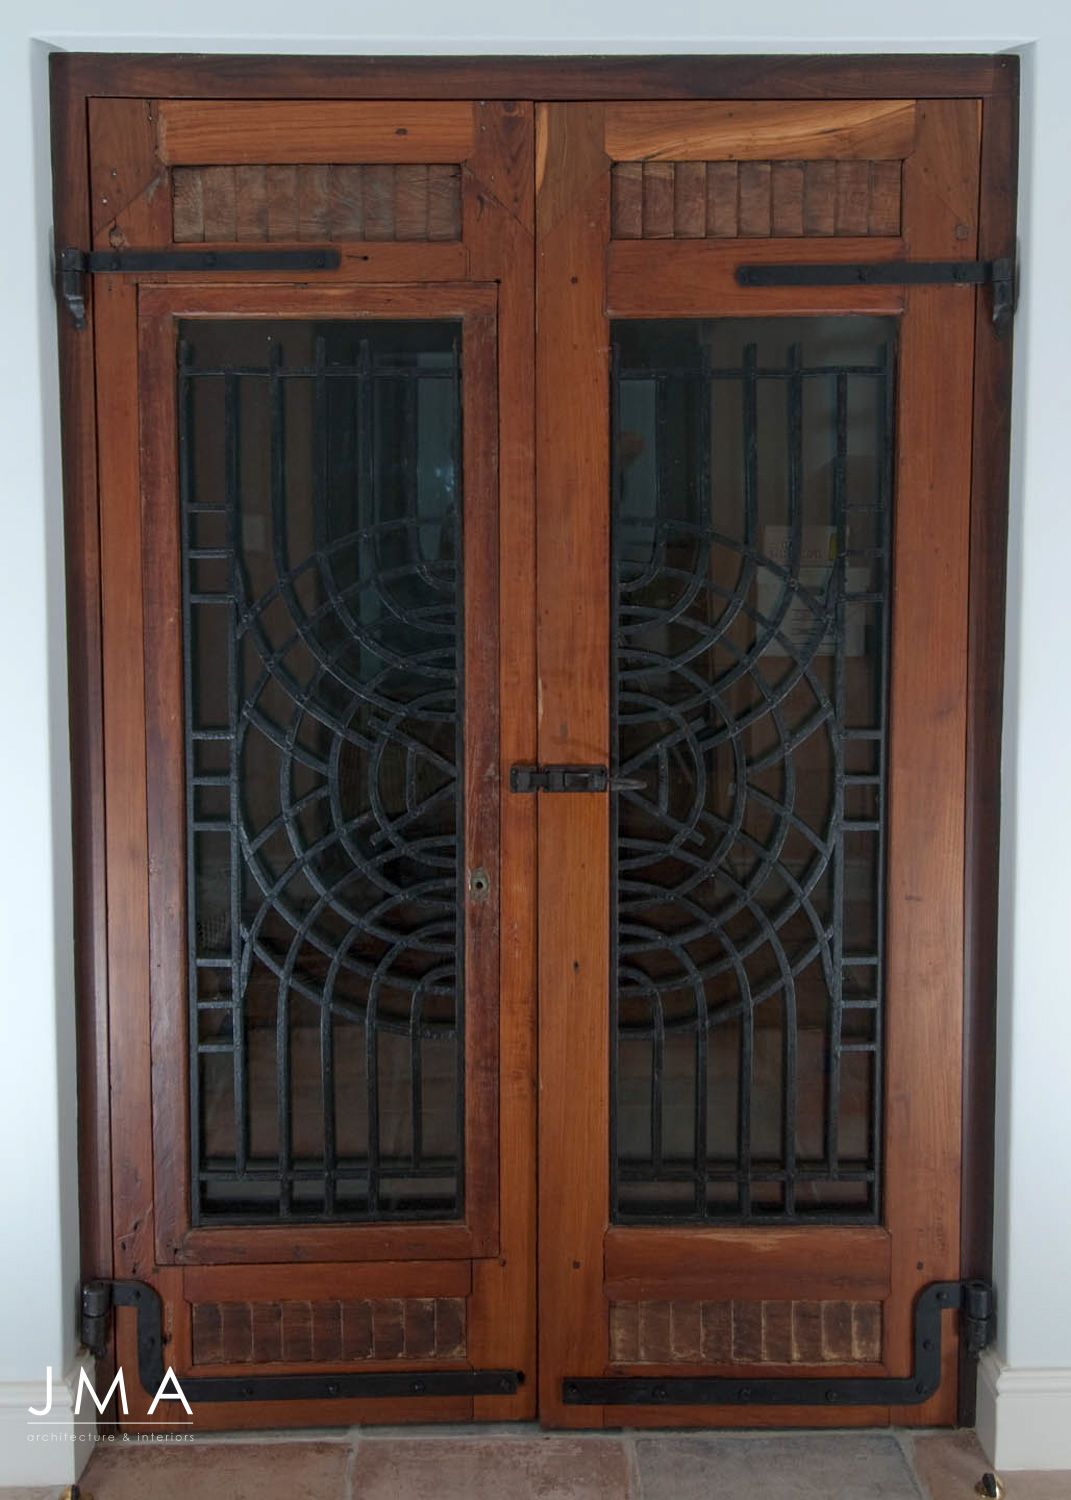 Jenny Mills Architecture: Original door